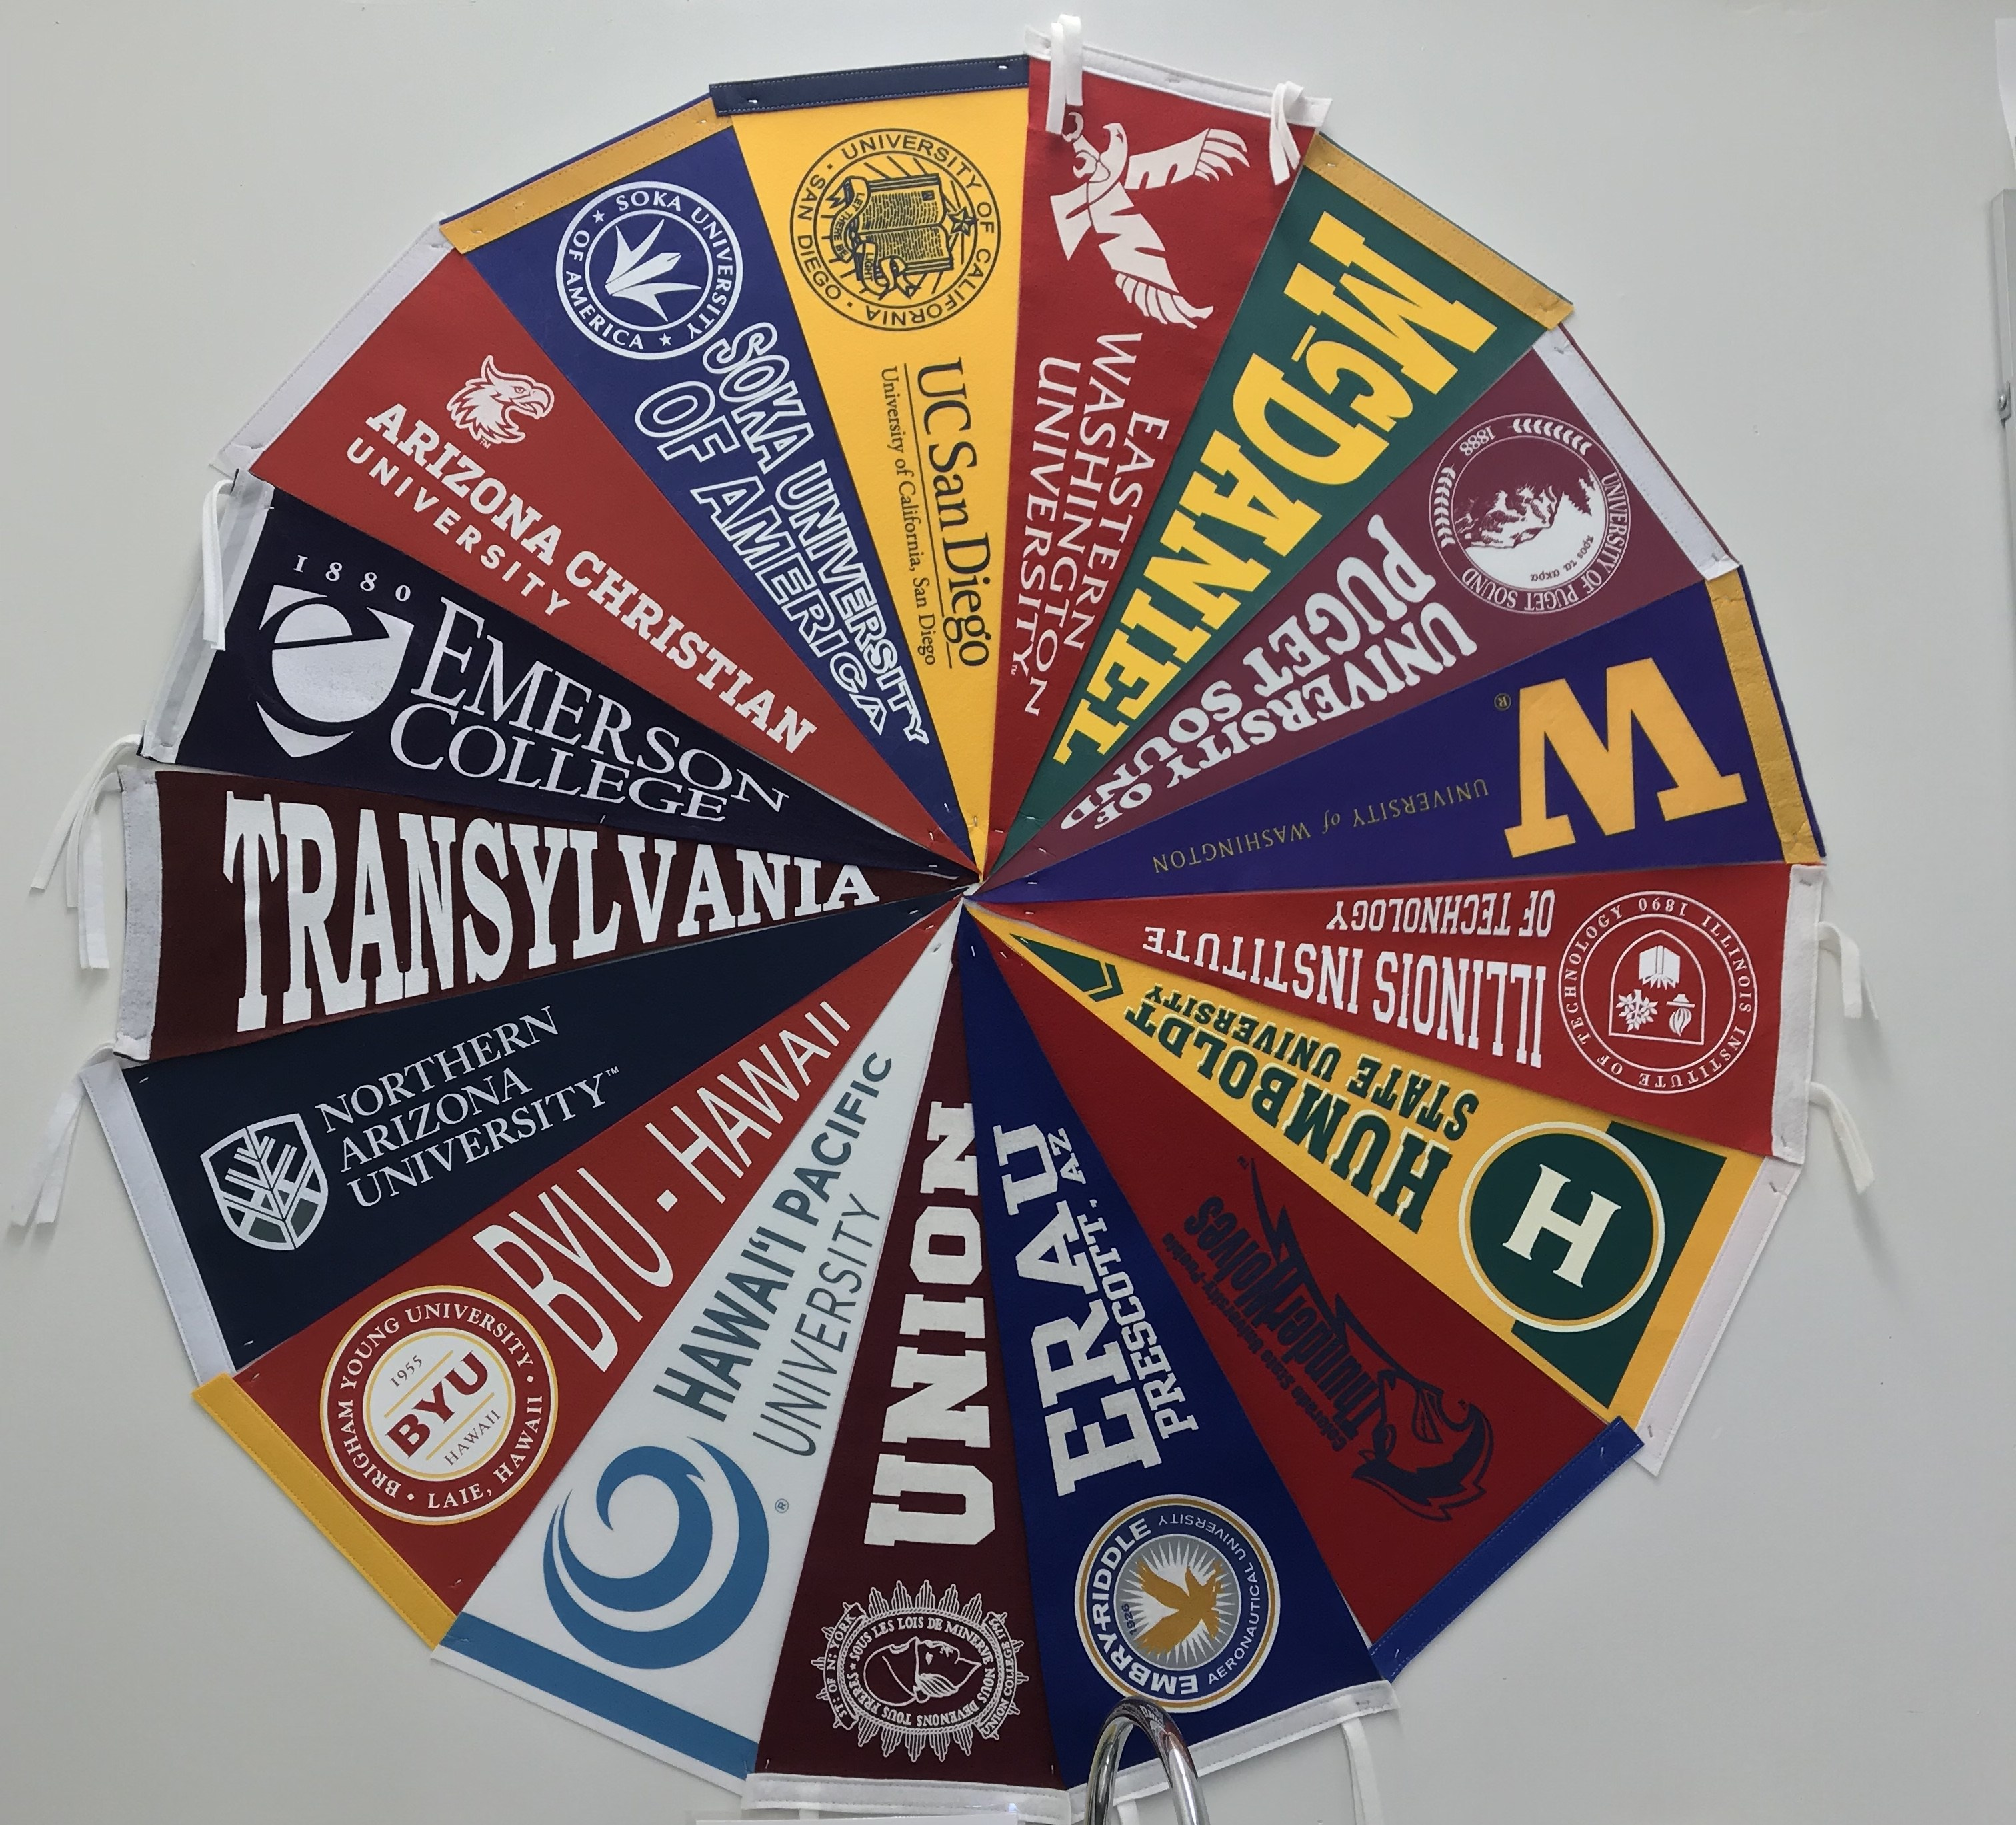 A wheel of college flag banners.